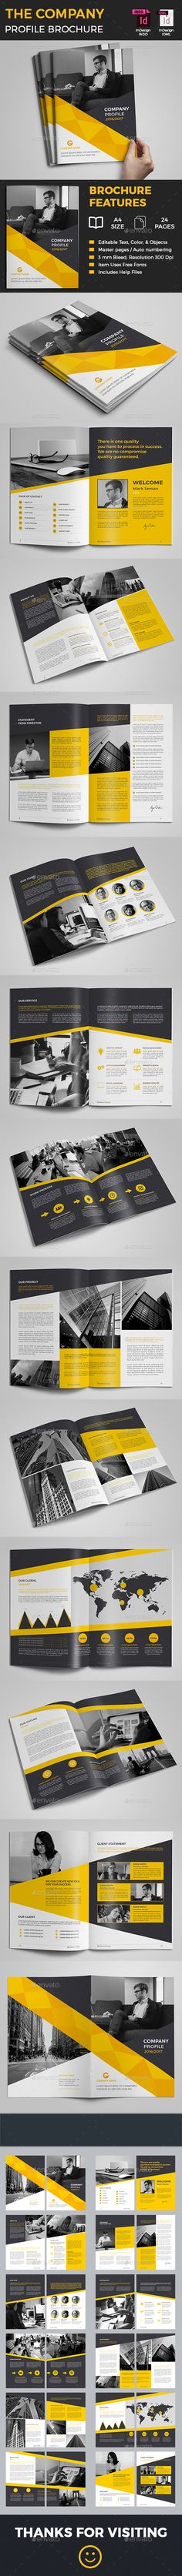 Company Profile Brochure Template InDesign INDD. Download here…